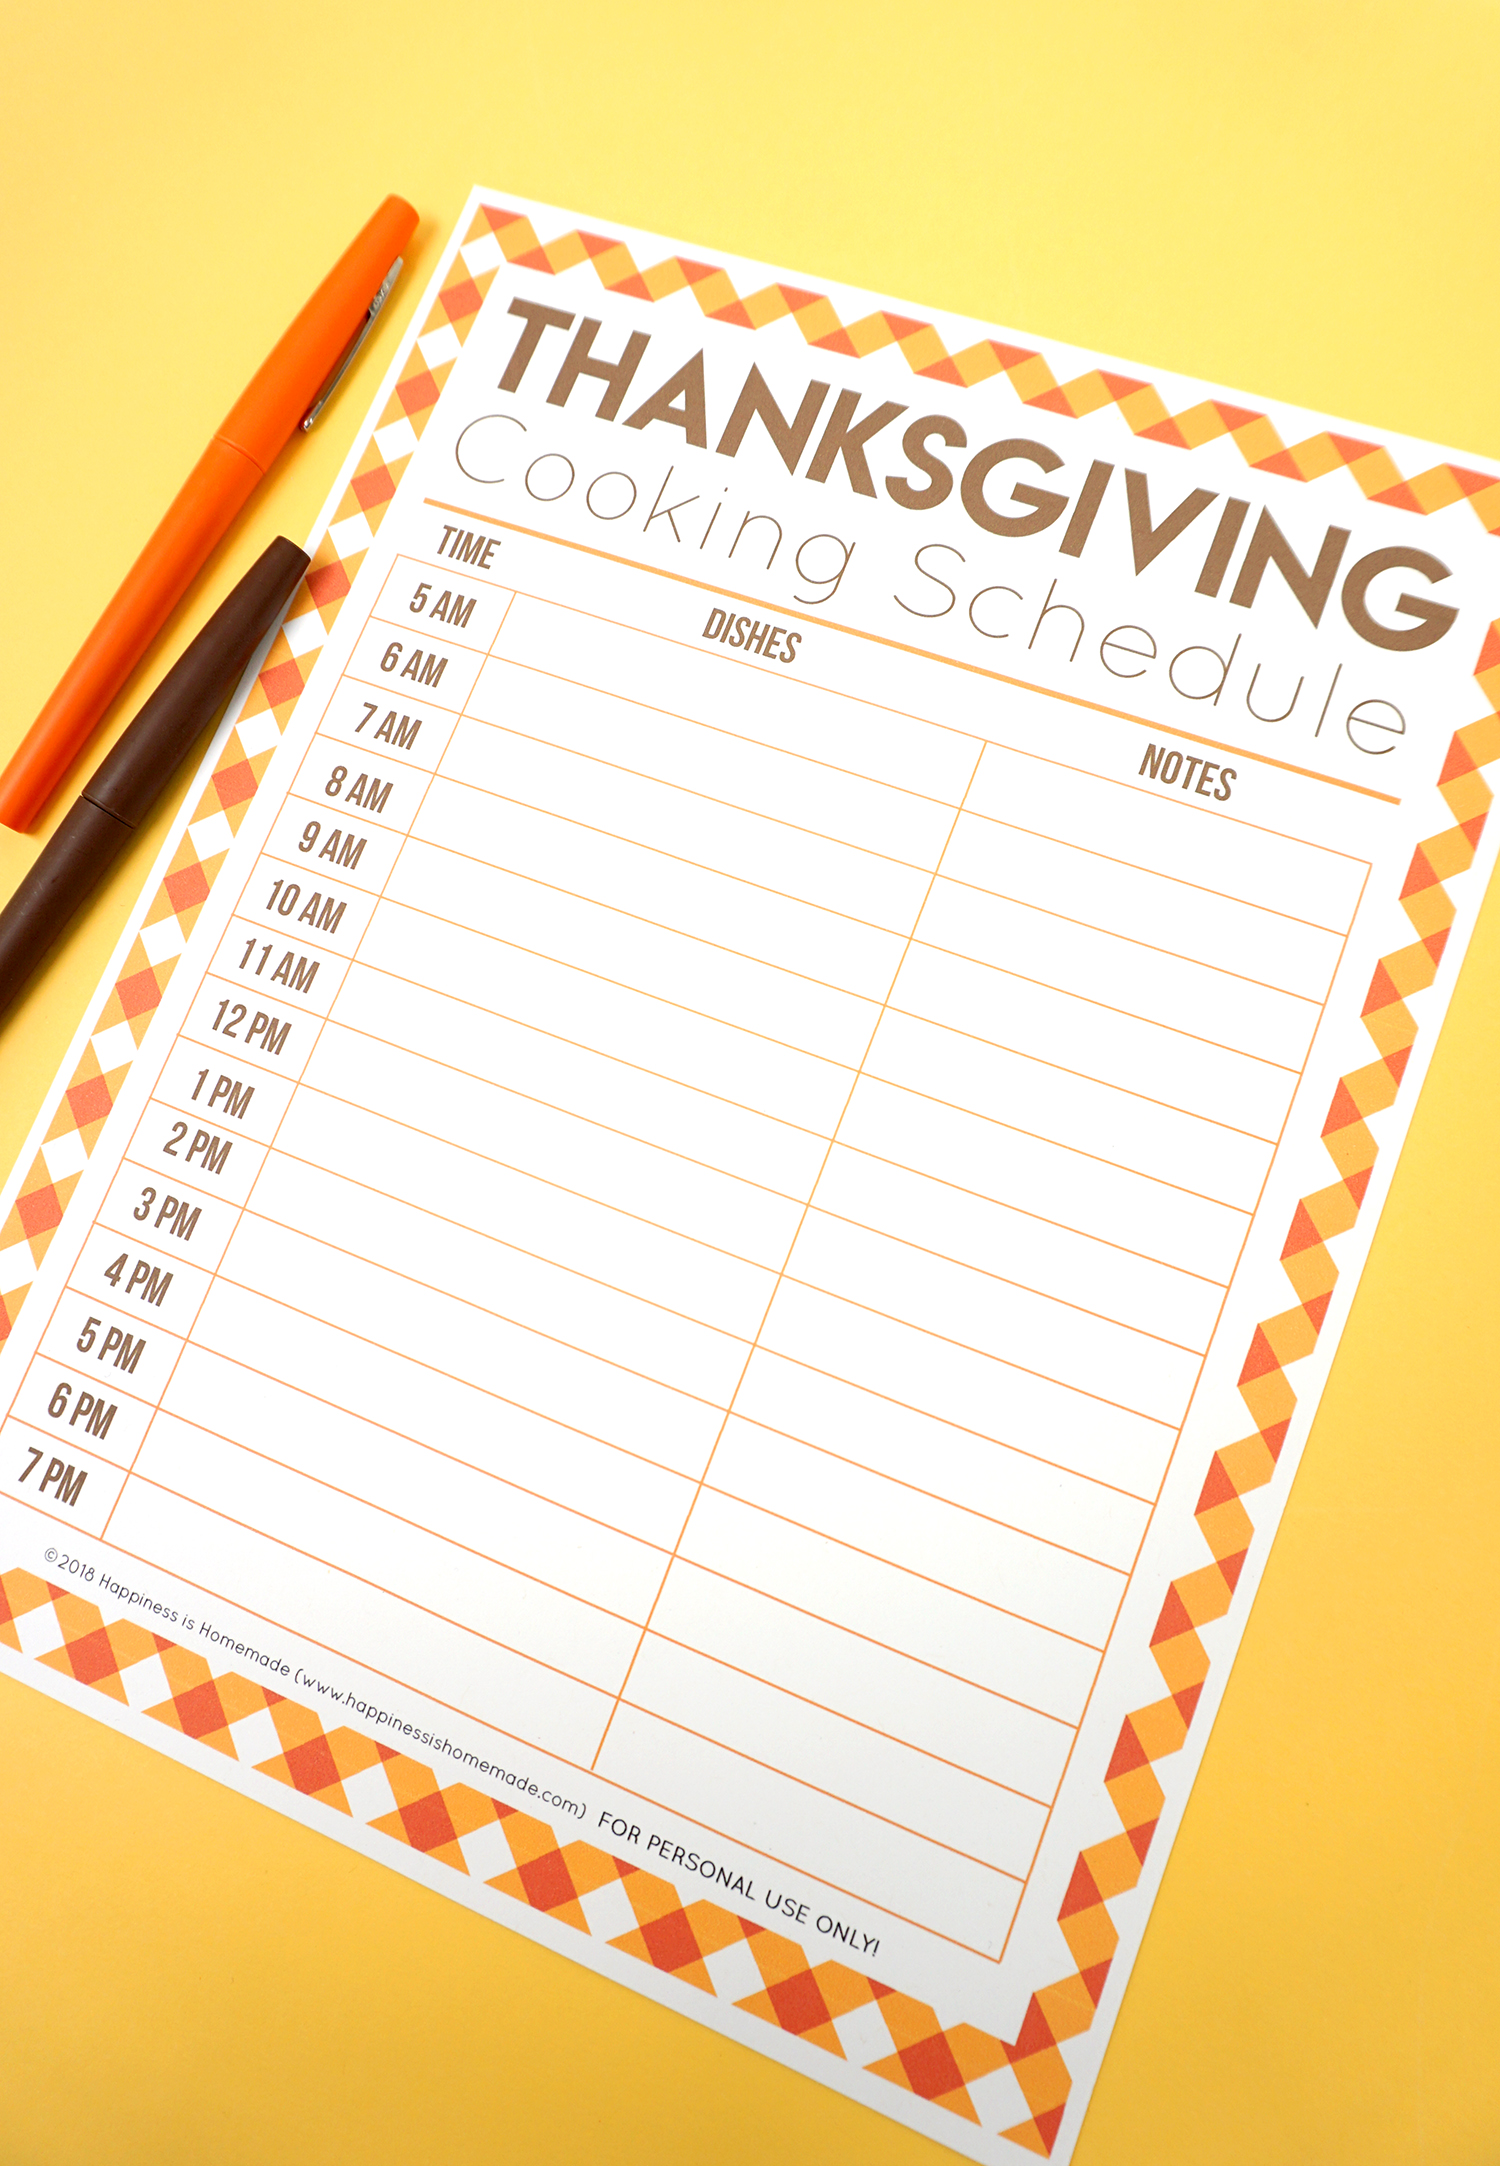 After You Have The Menu Planned Out Use Our Printable Thanksgiving Cooking Schedule To Plan Your Times Throughout Day